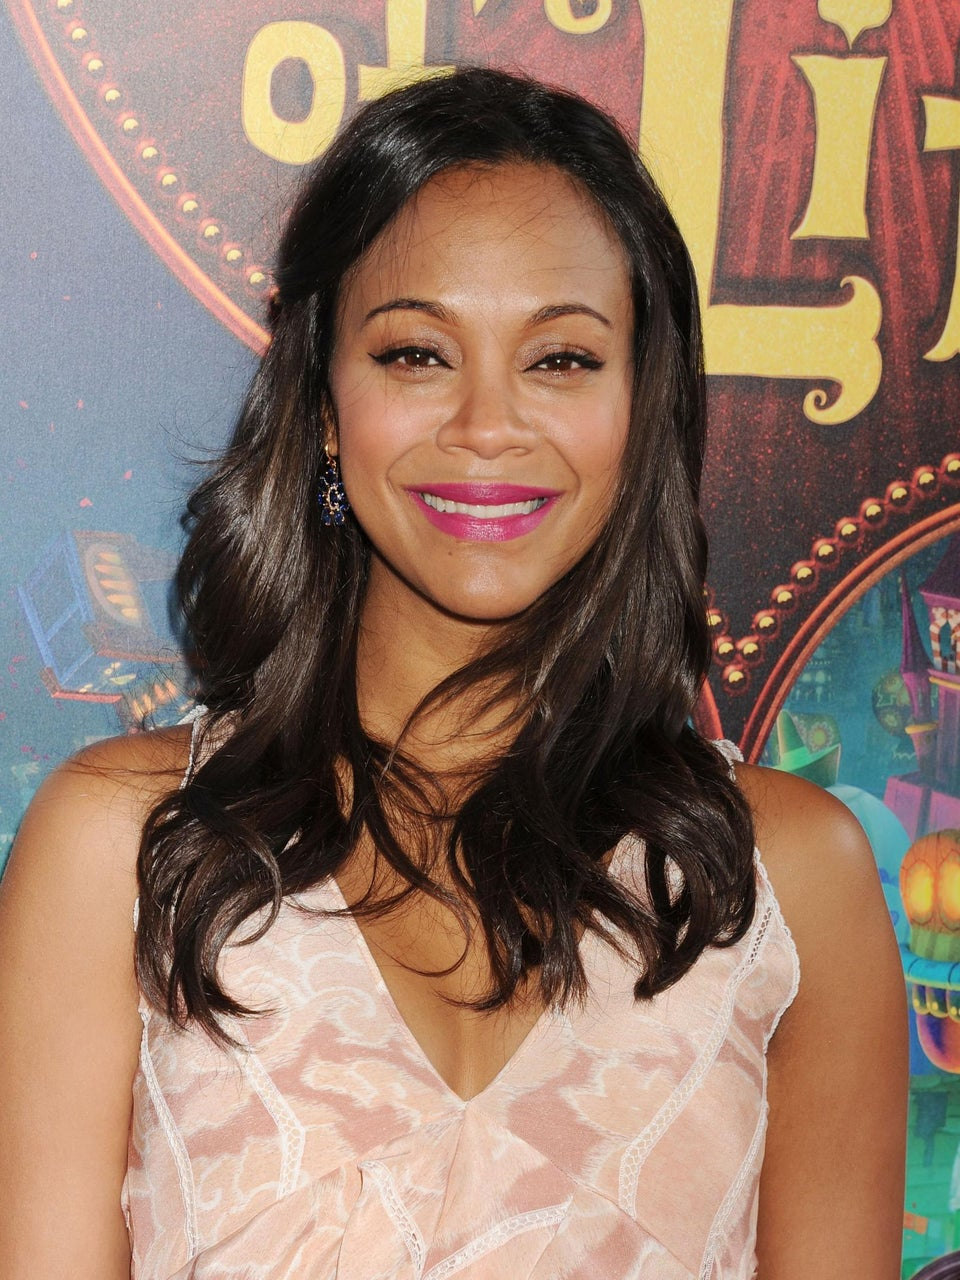 Zoe Saldana Says She Relies on Her 'Tribe' for Help with Her Twins